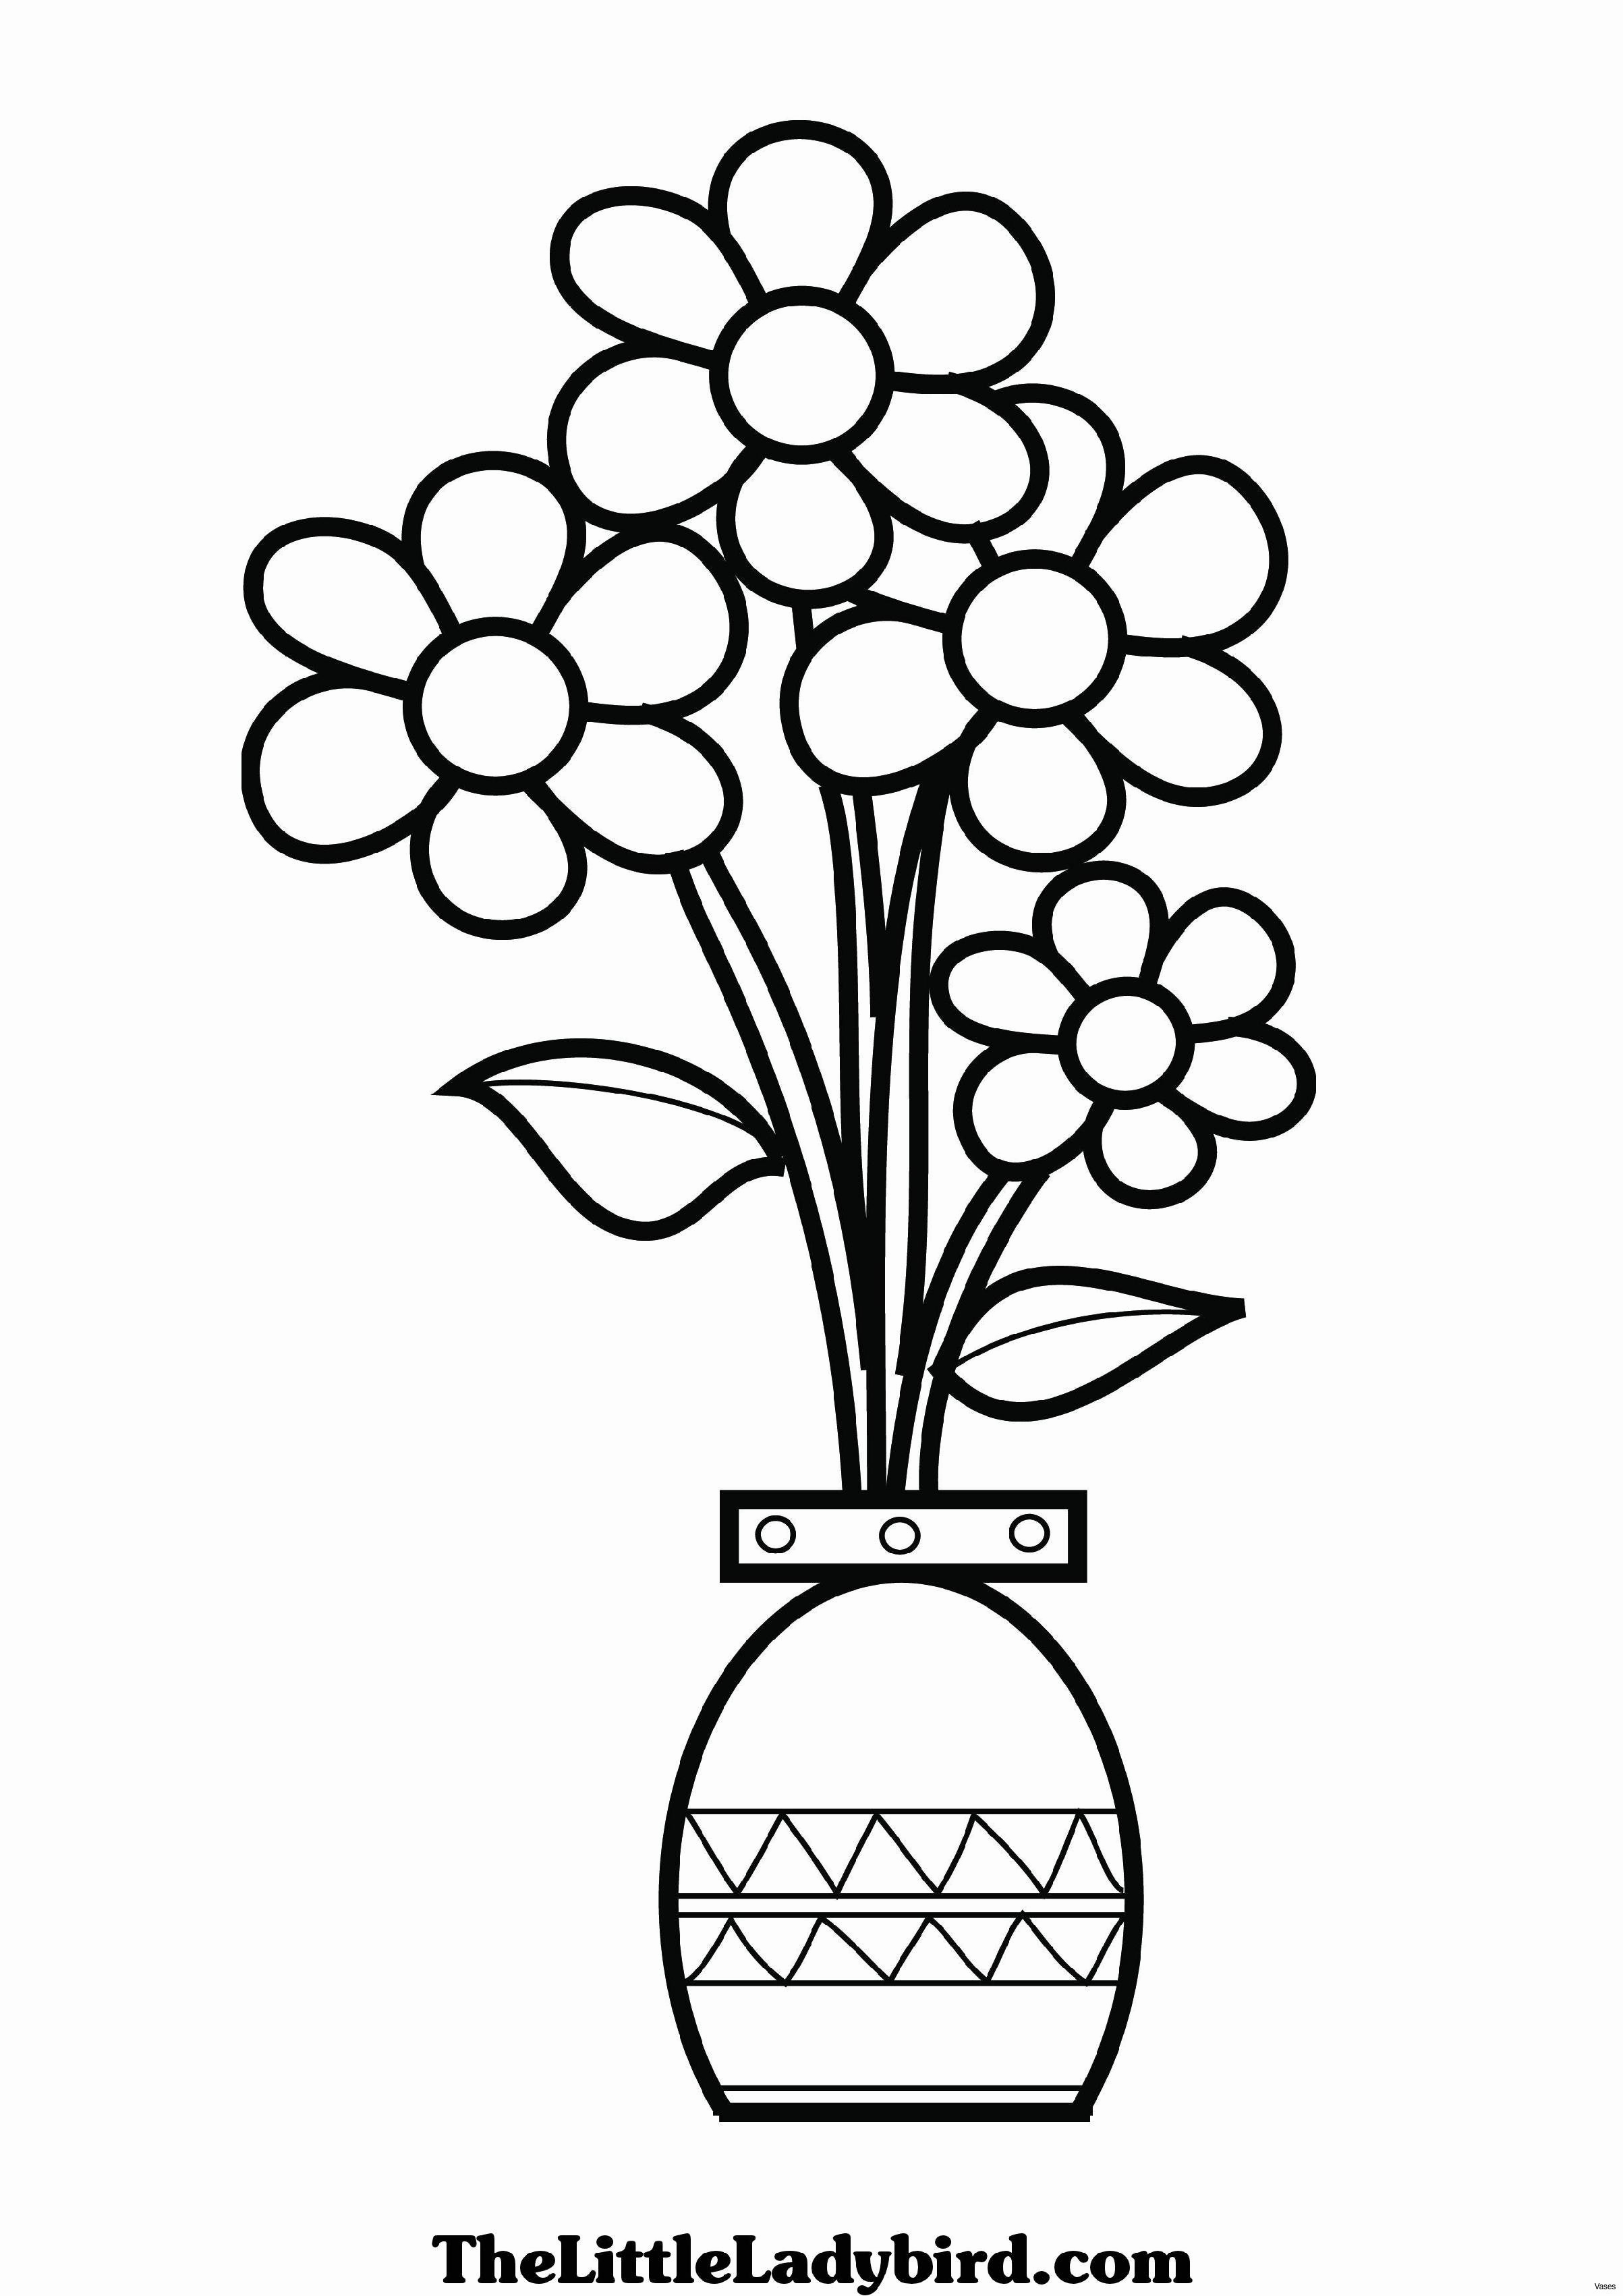 Flower Vase Coloring Pages At Getcolorings